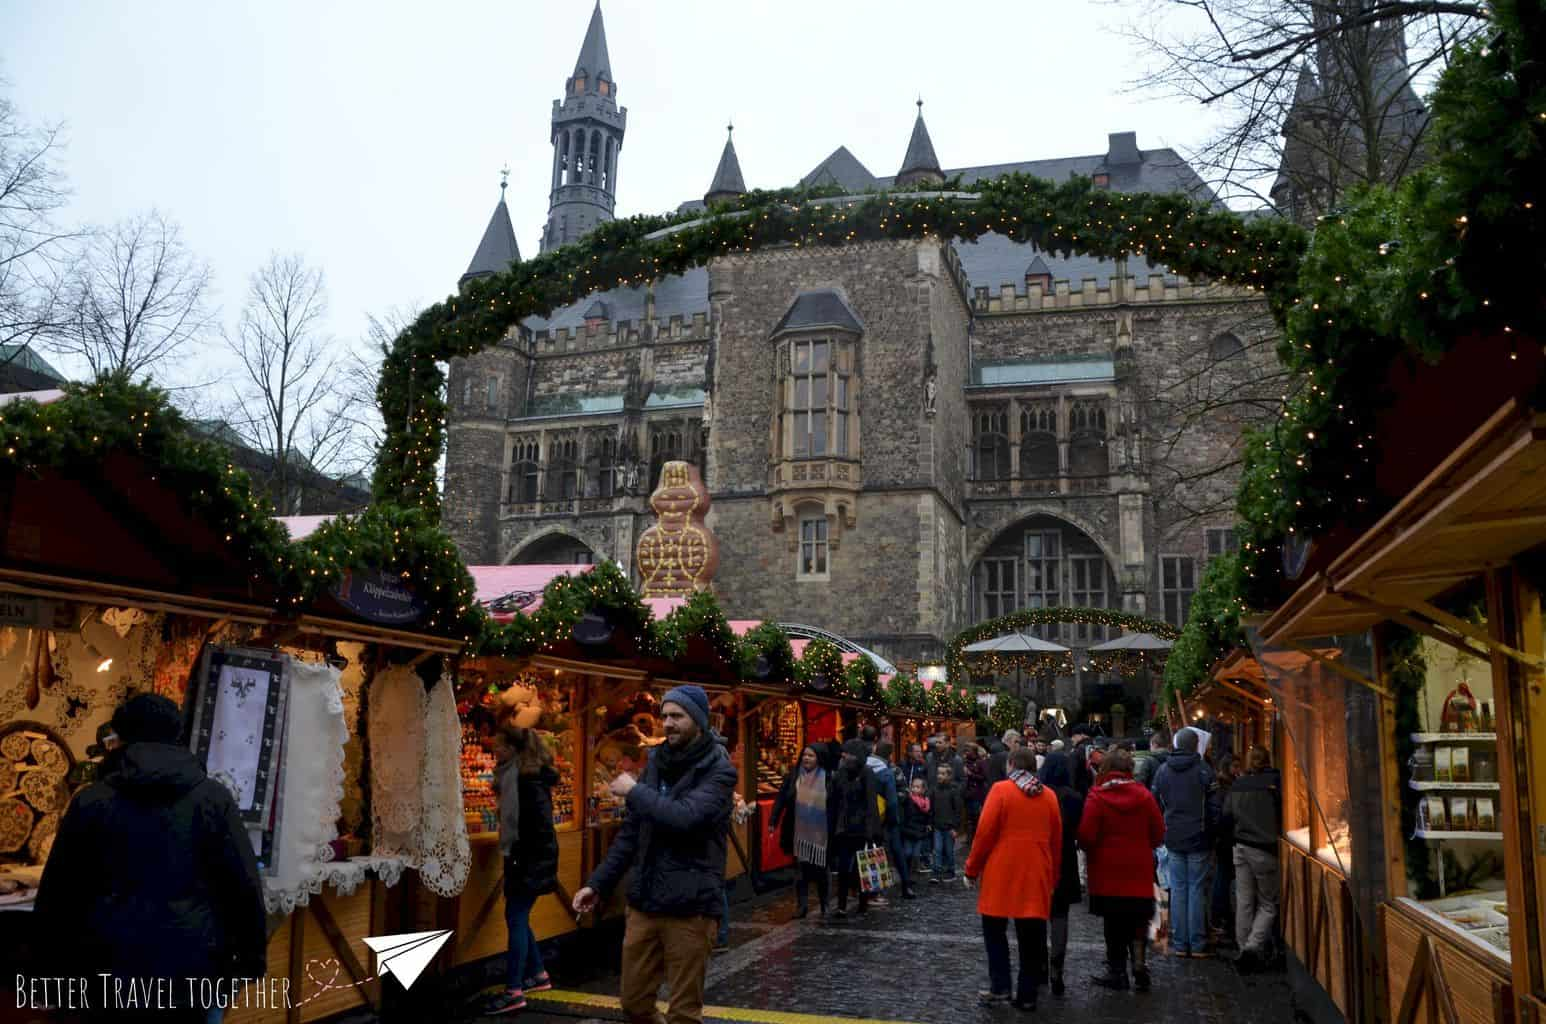 chirstmas market in front of the city hall